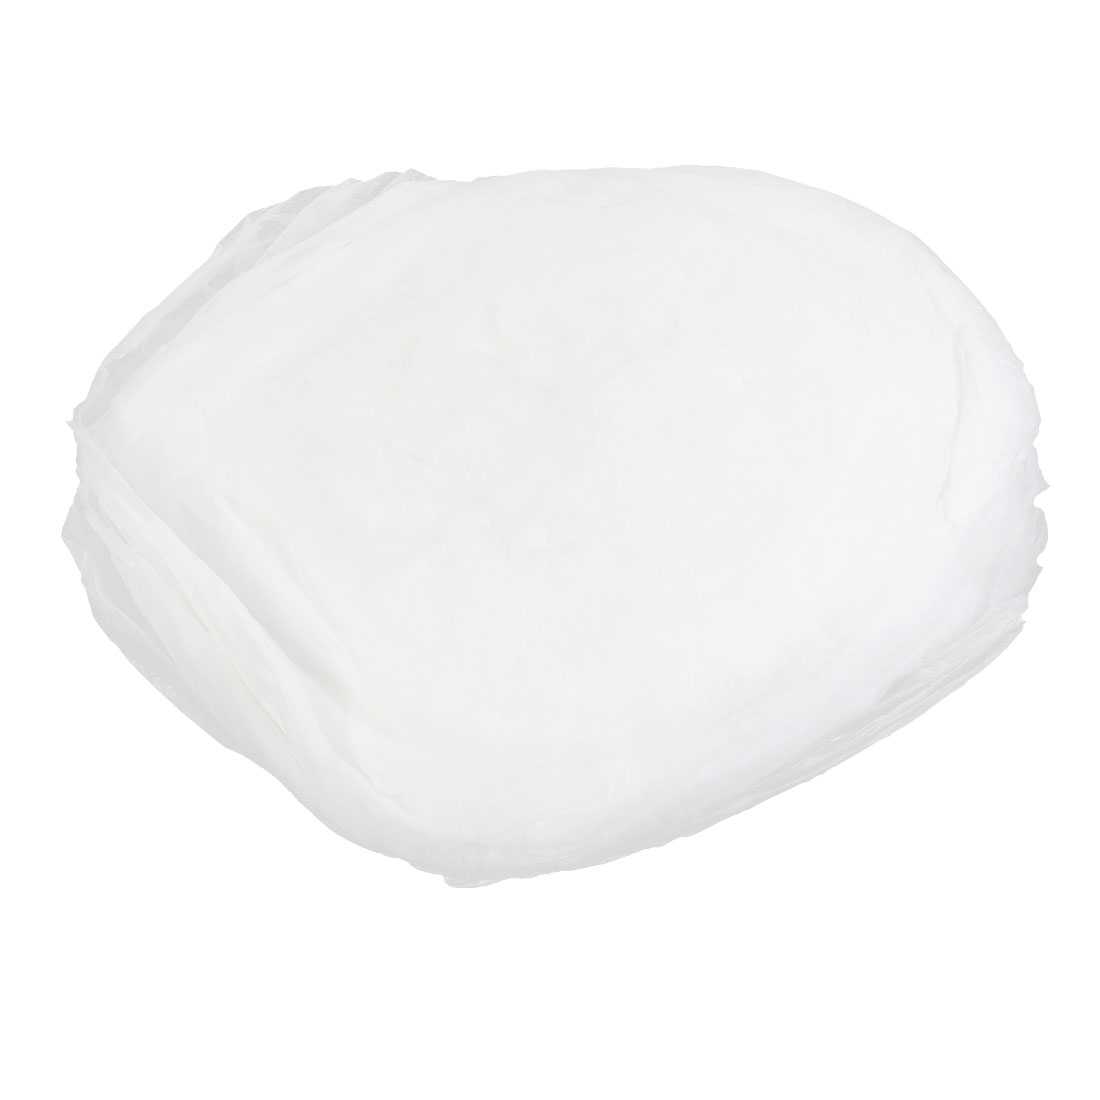 100Pcs White Non-woven Disposable Bouffant Hairdressing Anti Dust Hat Cap